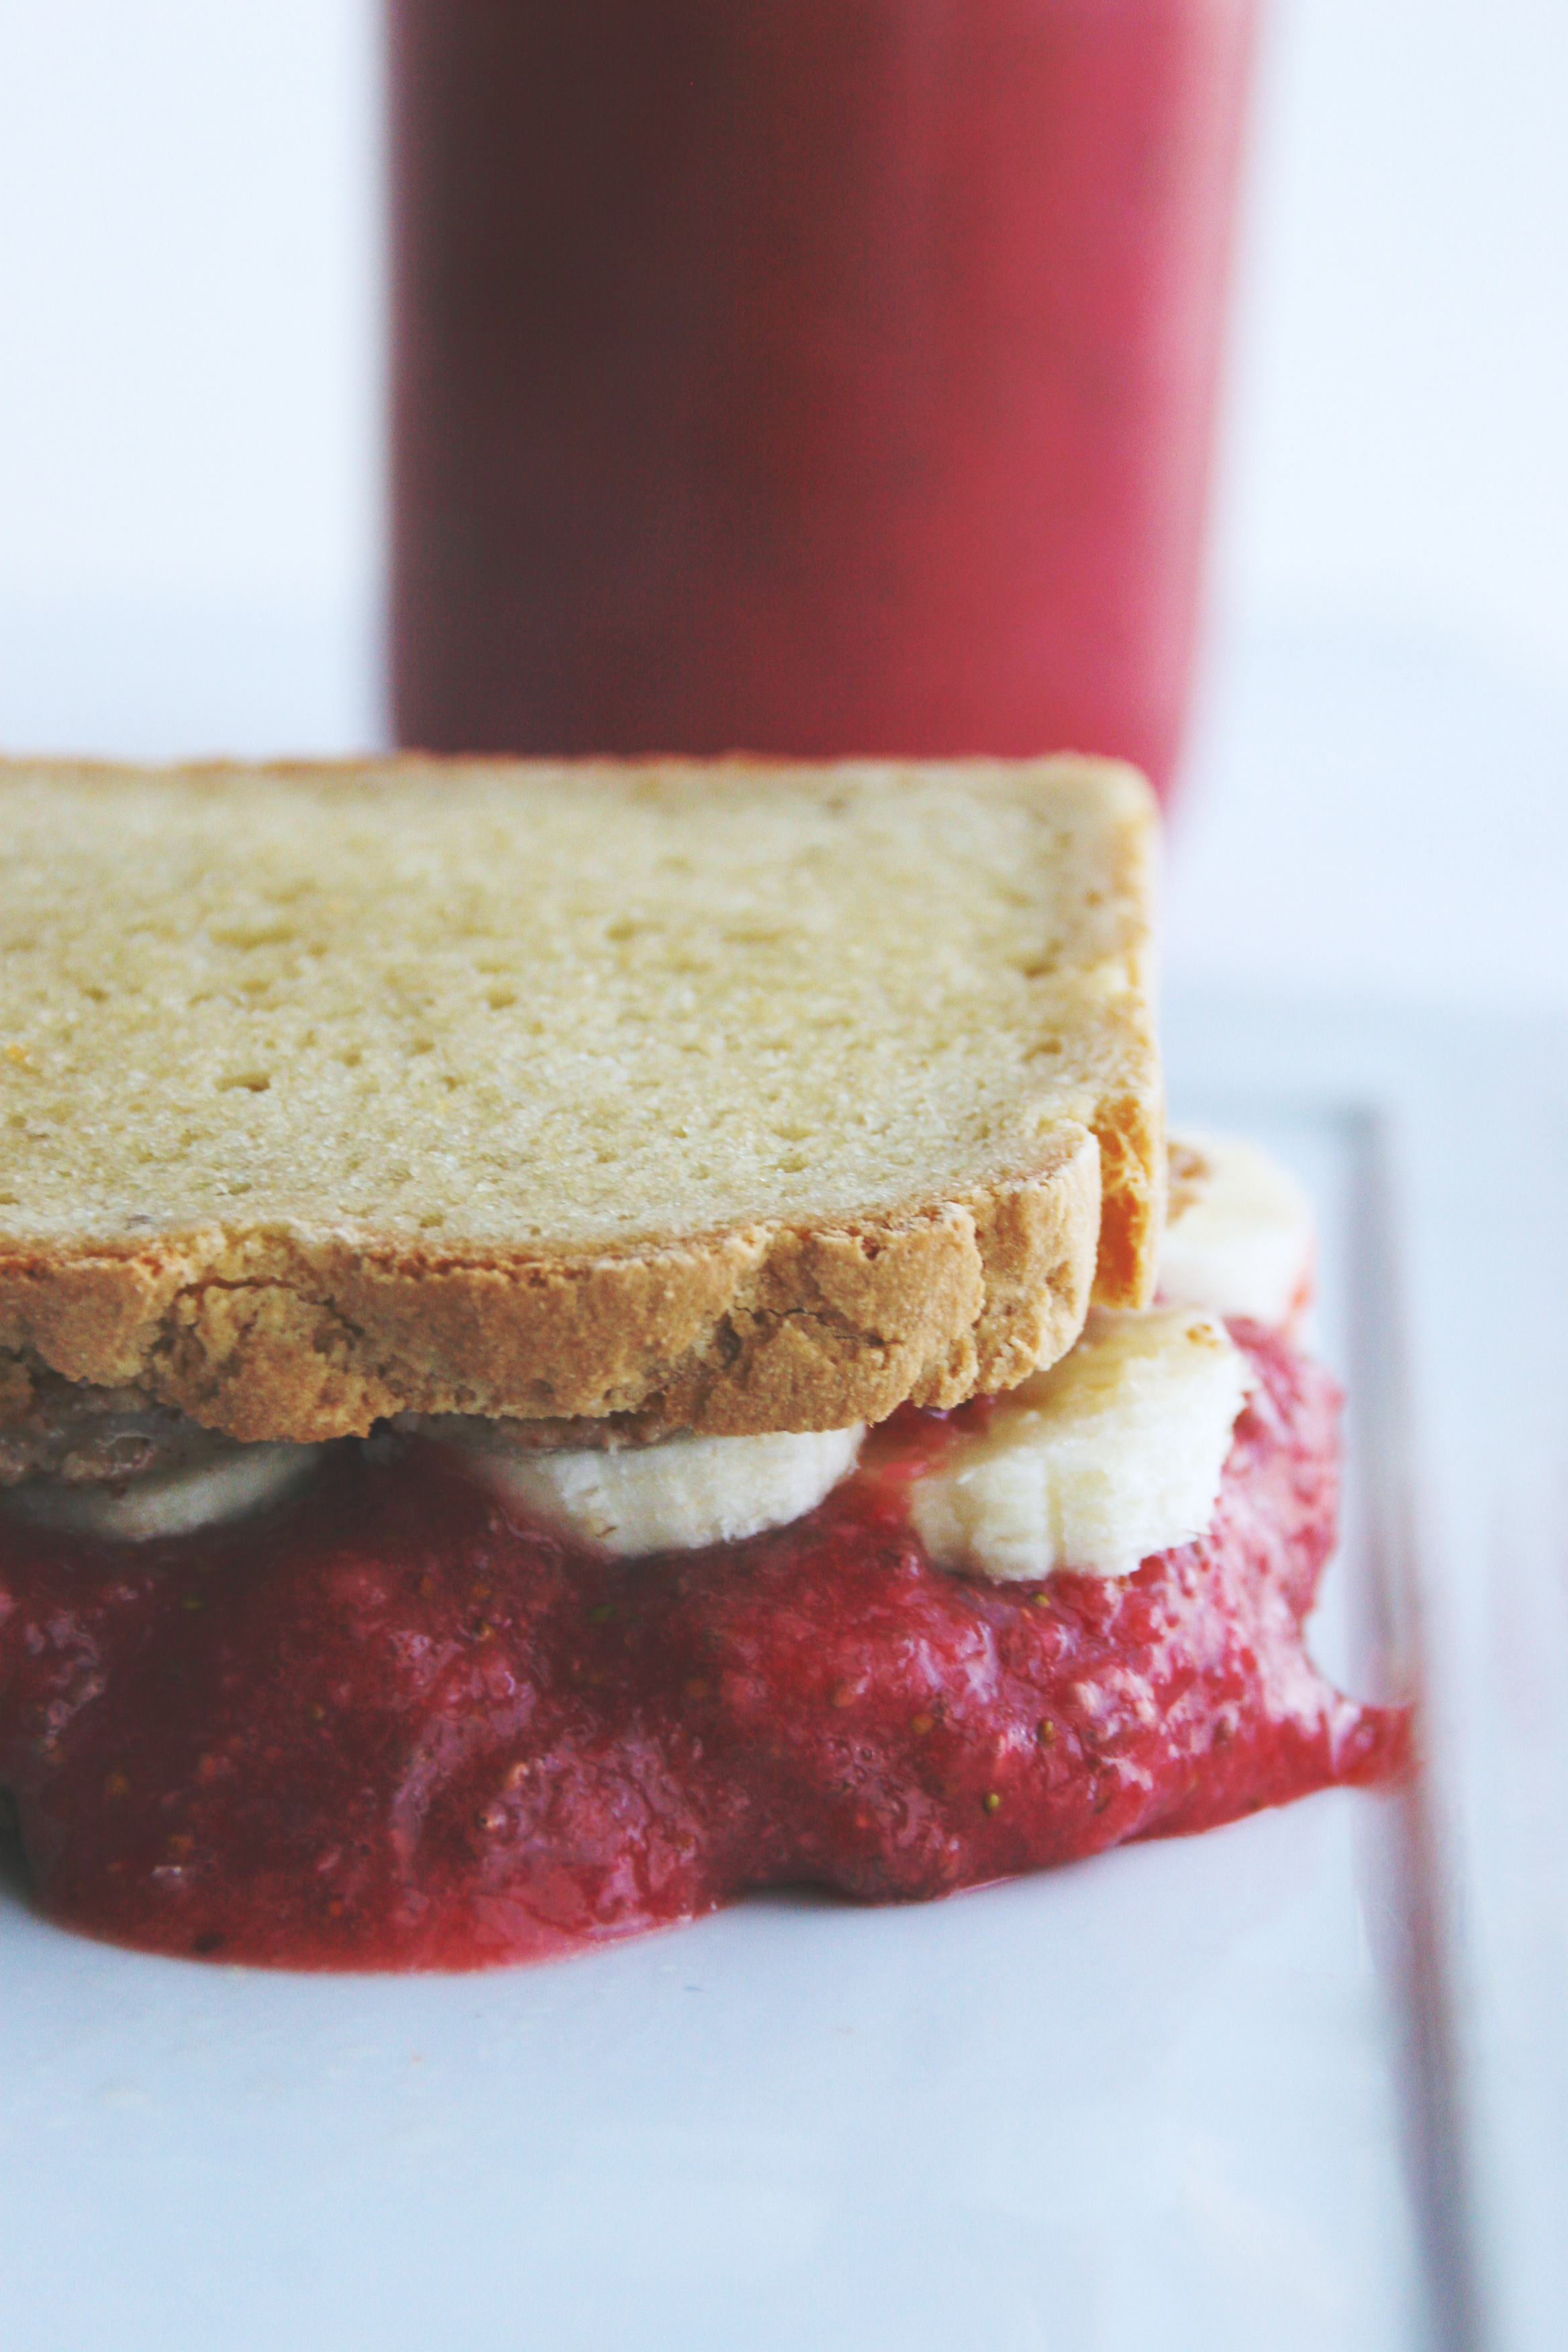 almond butter, banana, & strawberry chia jam sandwich // a simple 5-ingredient lunch perfect for PB&J lovers